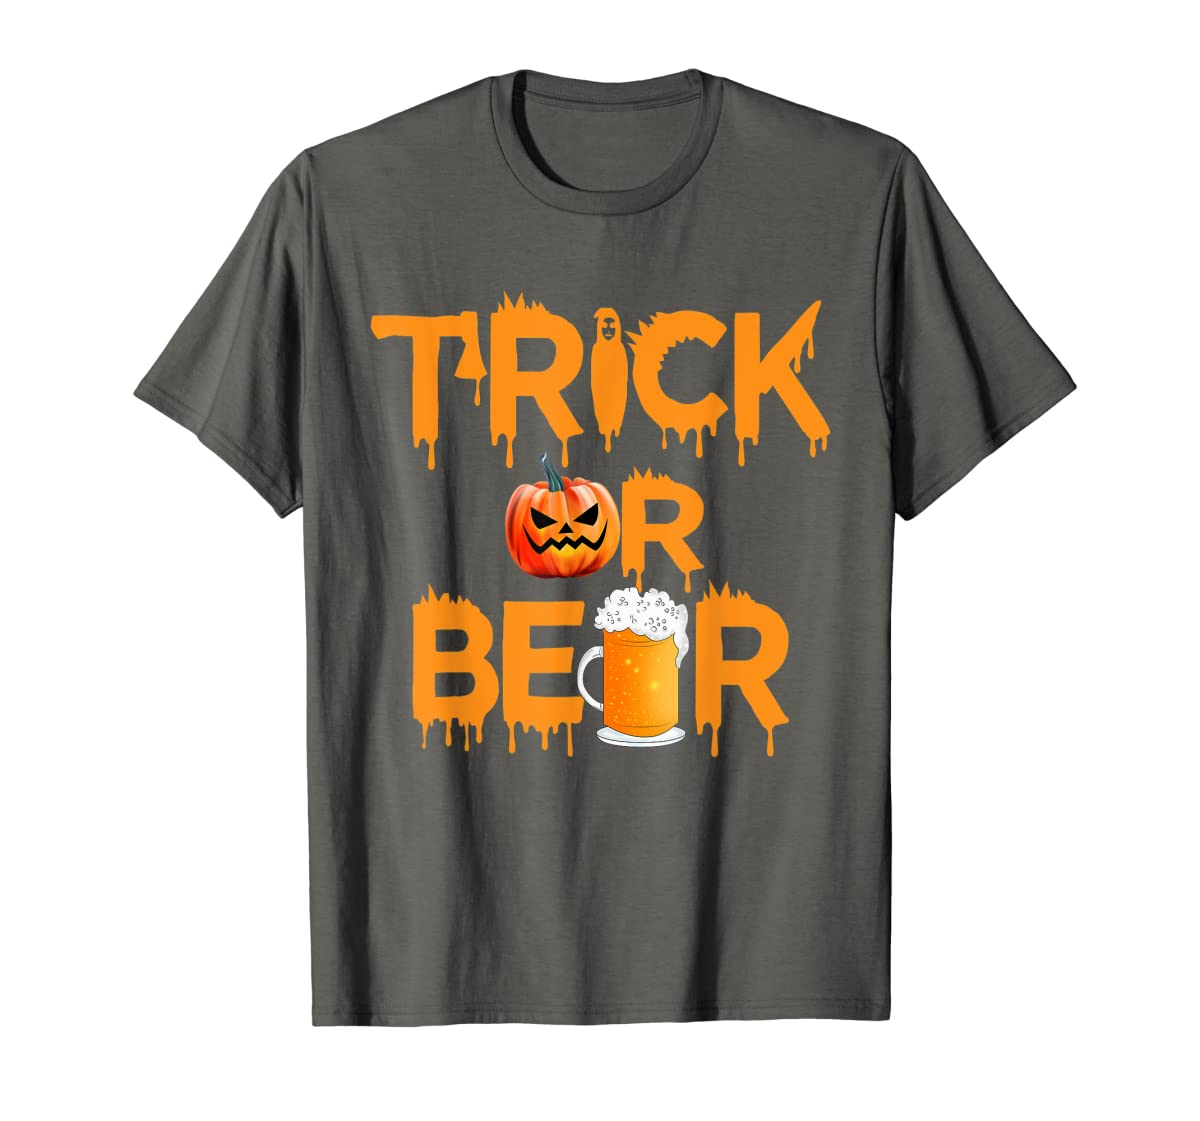 Halloween Costume Trick or Beer Drinking T Shirt Pumpkin Men T-Shirt-Men's T-Shirt-Dark Heather